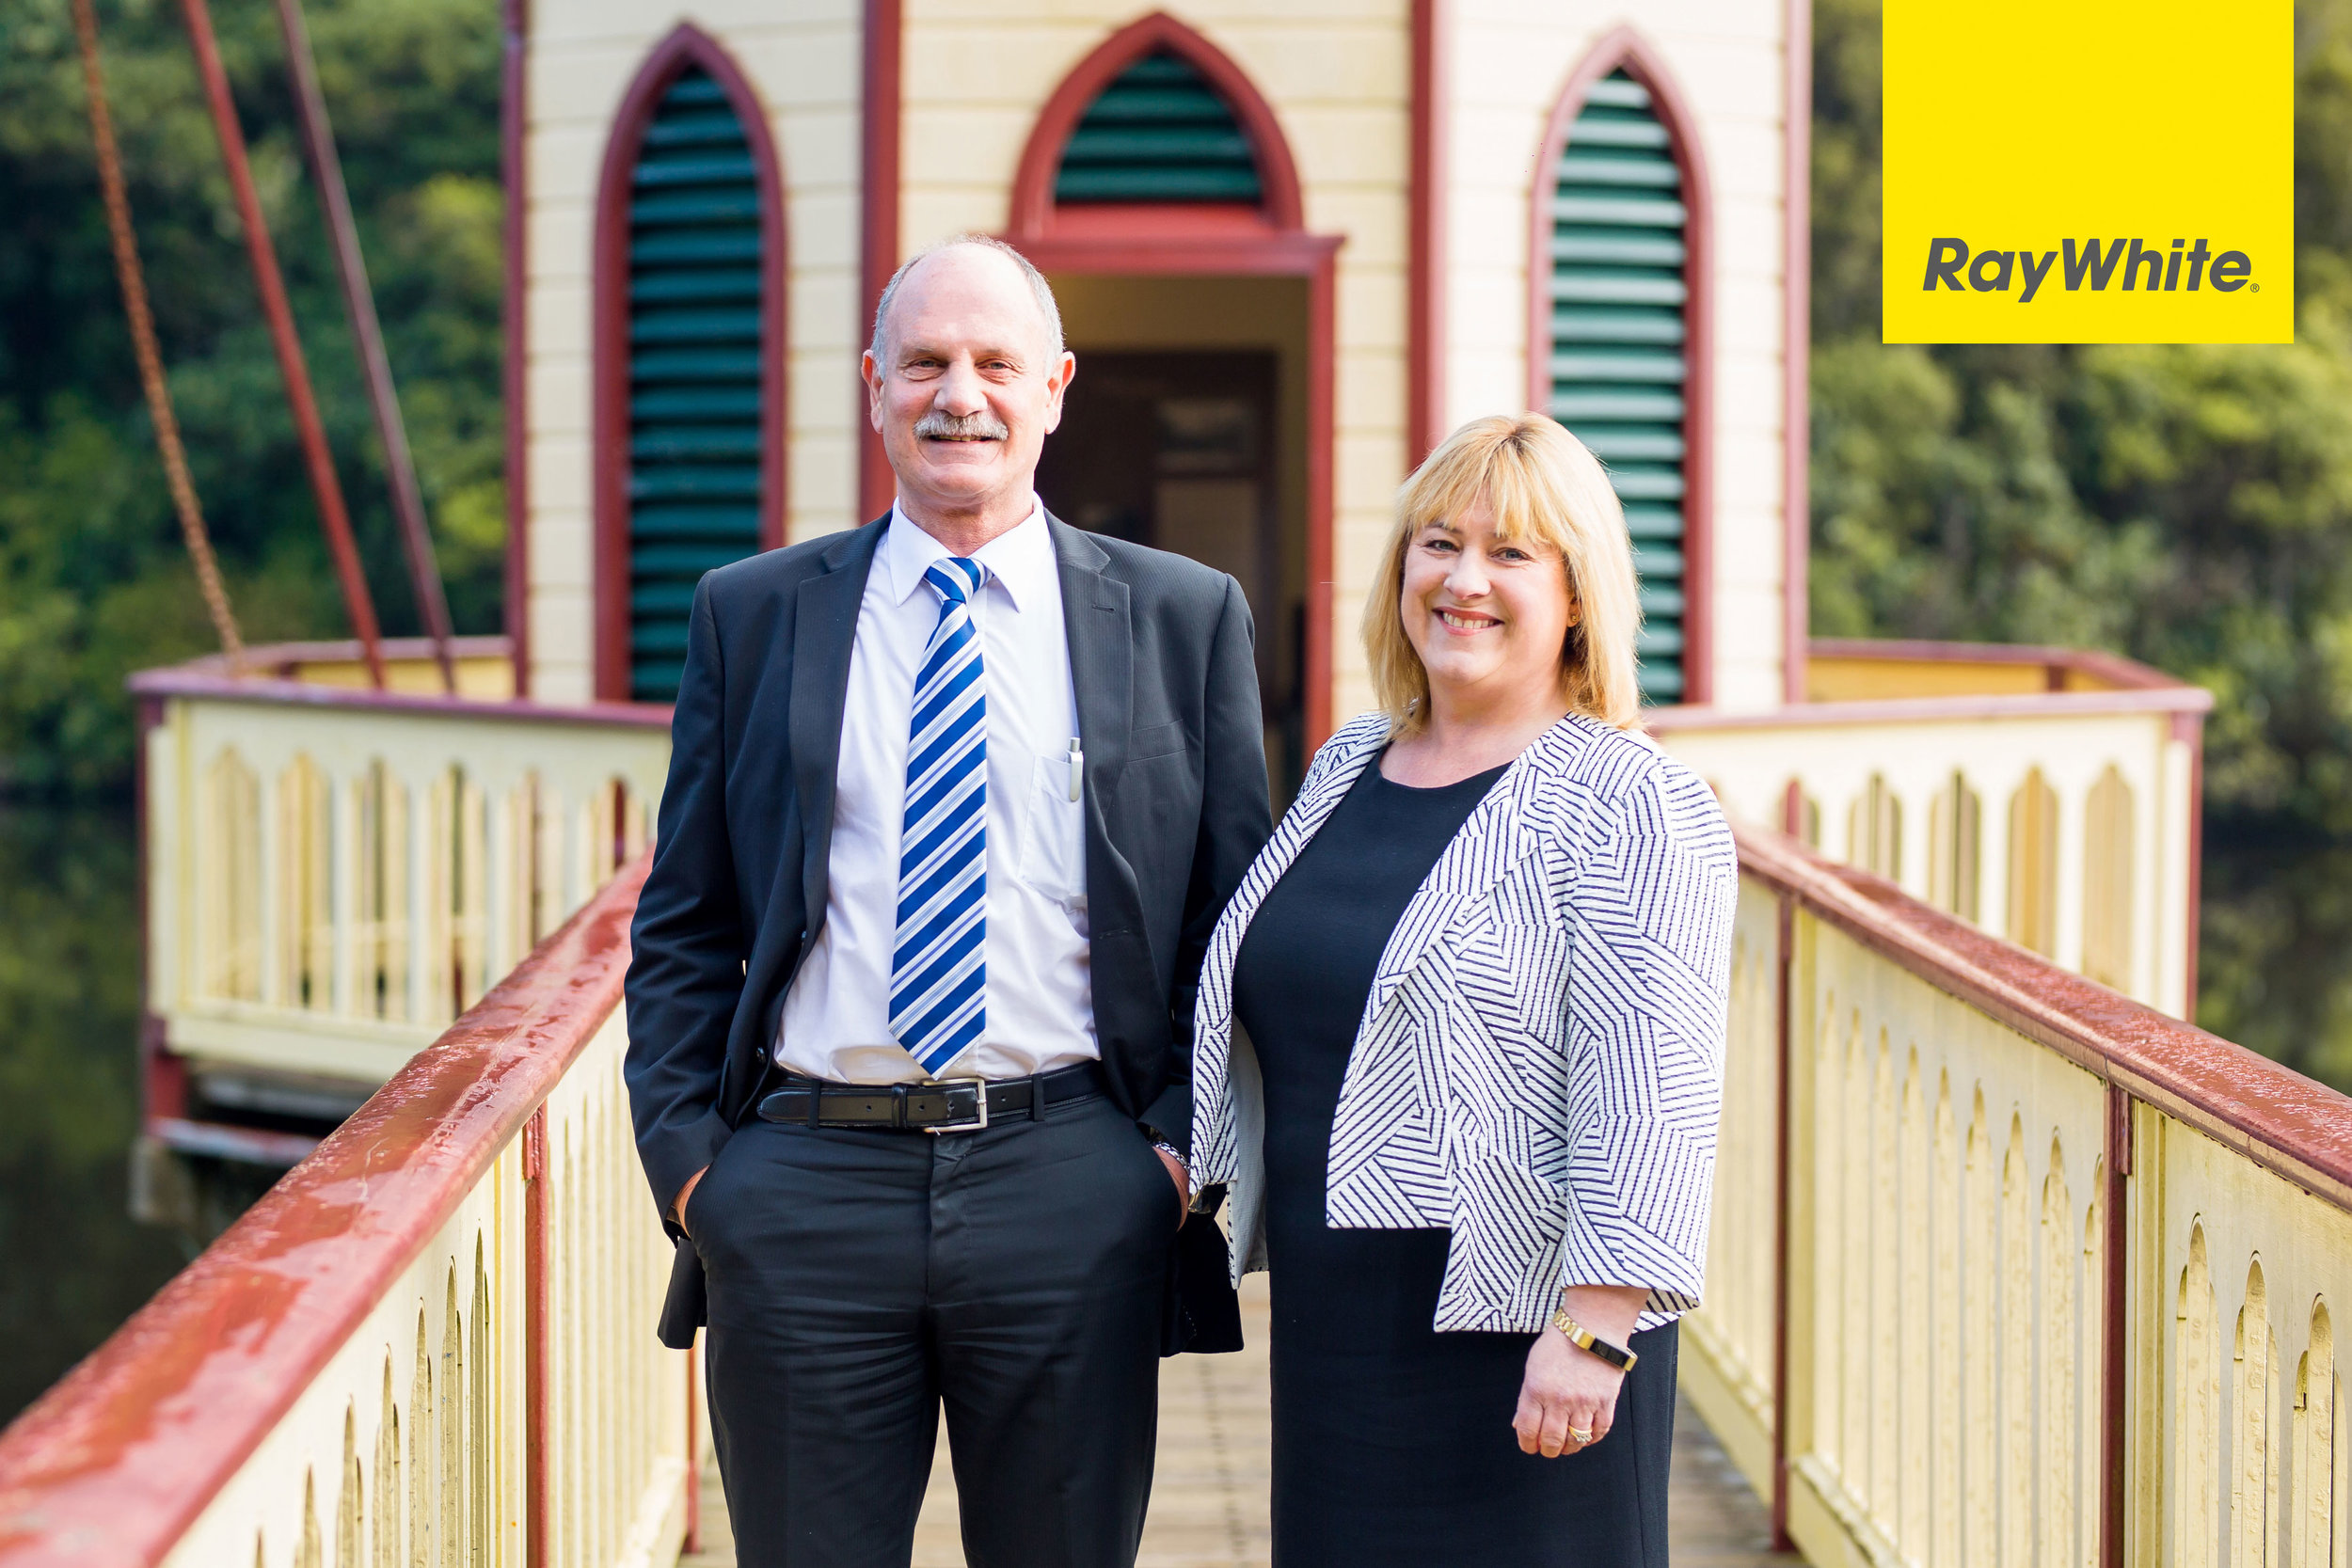 Andre & Julie - Ray White Karori